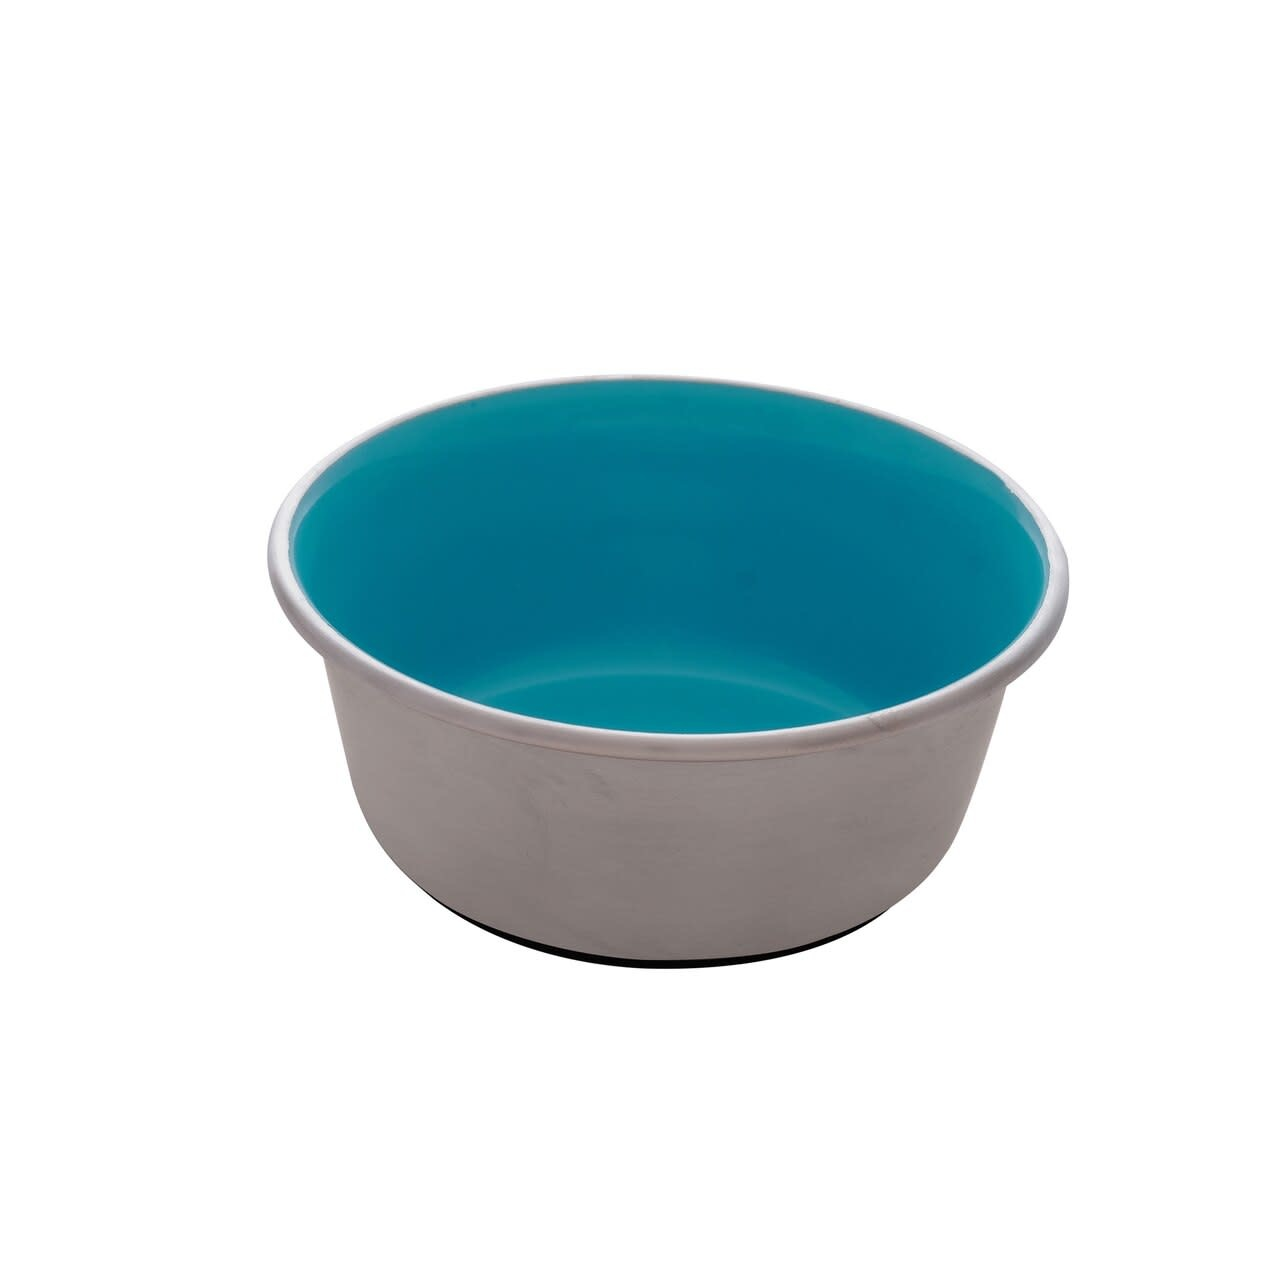 Dogit Stainless Steel Color Bowl Blue 11.8 fl.oz